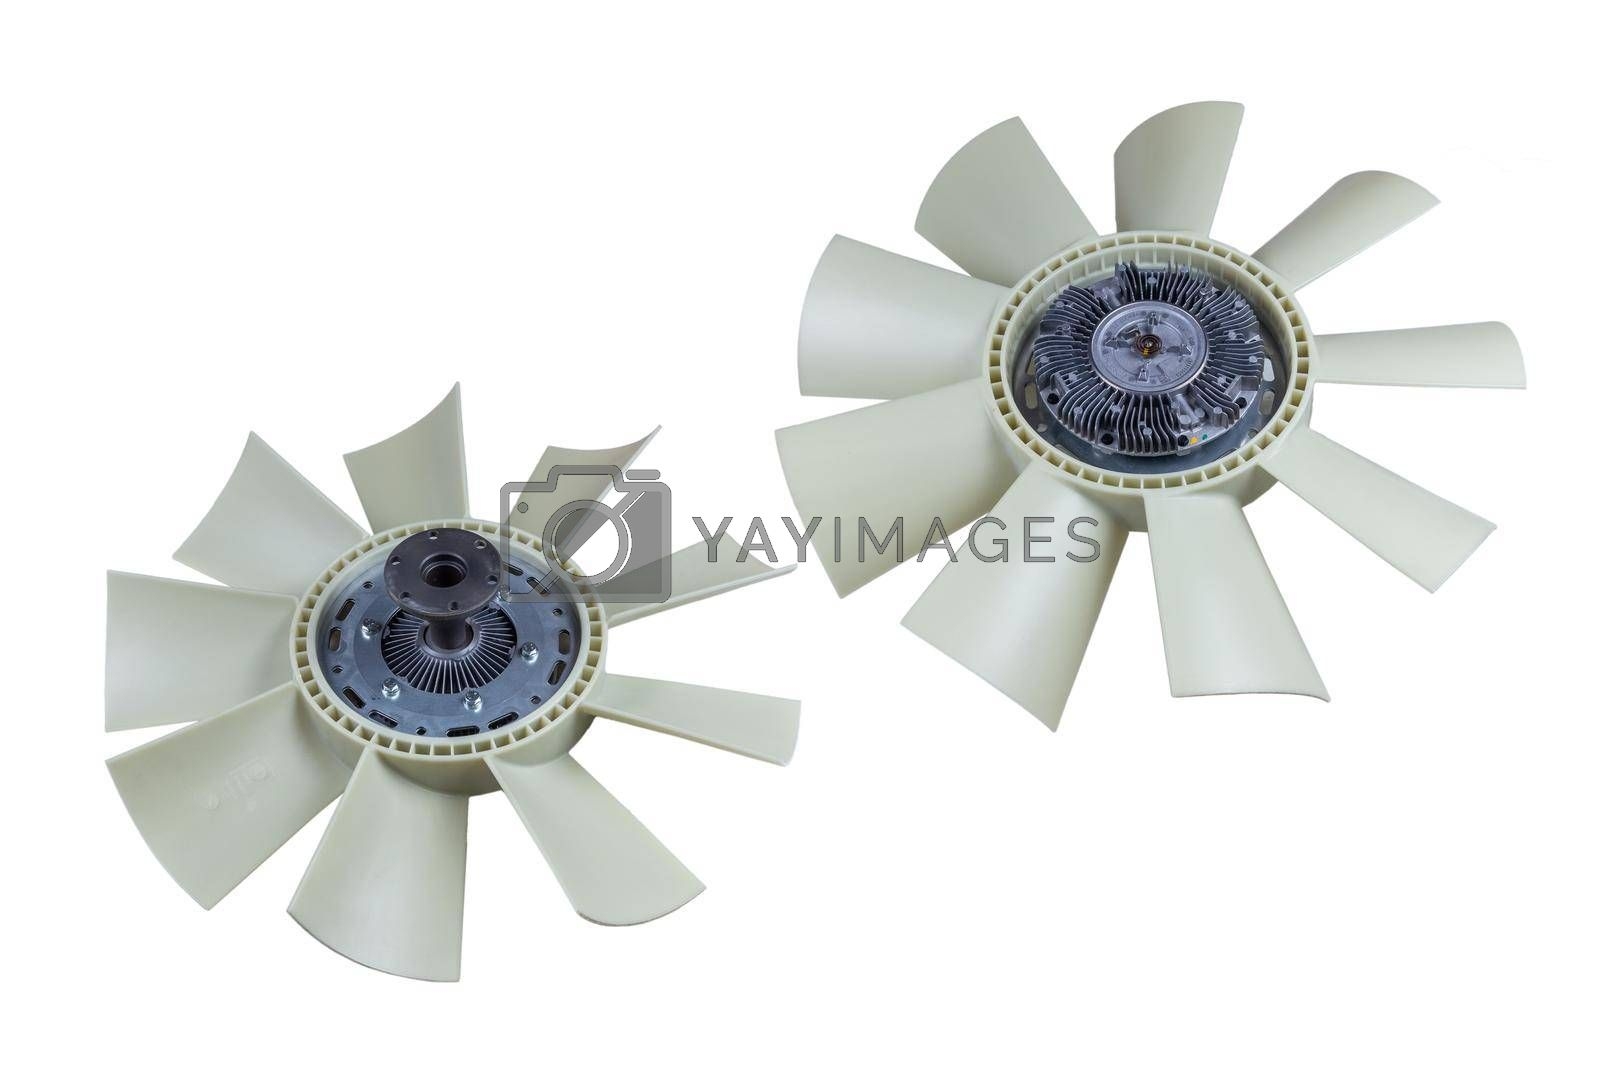 Royalty free image of Viscous coupling of the fan car with the impeller Assembly on an isolated white background by forester